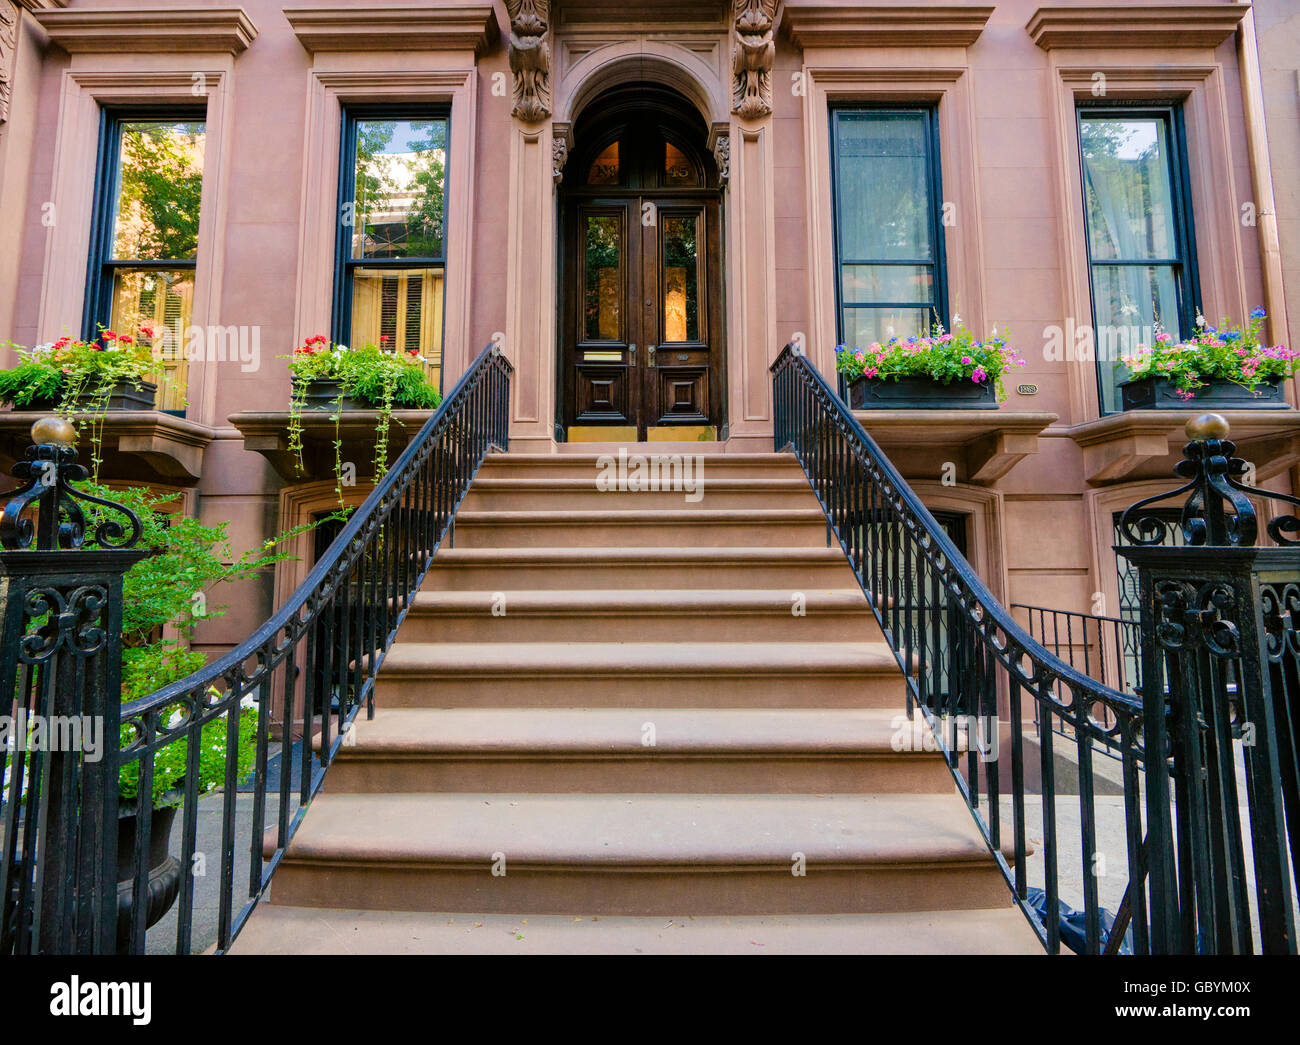 Lovely Brownstone Building With Wrought Iron Banister In